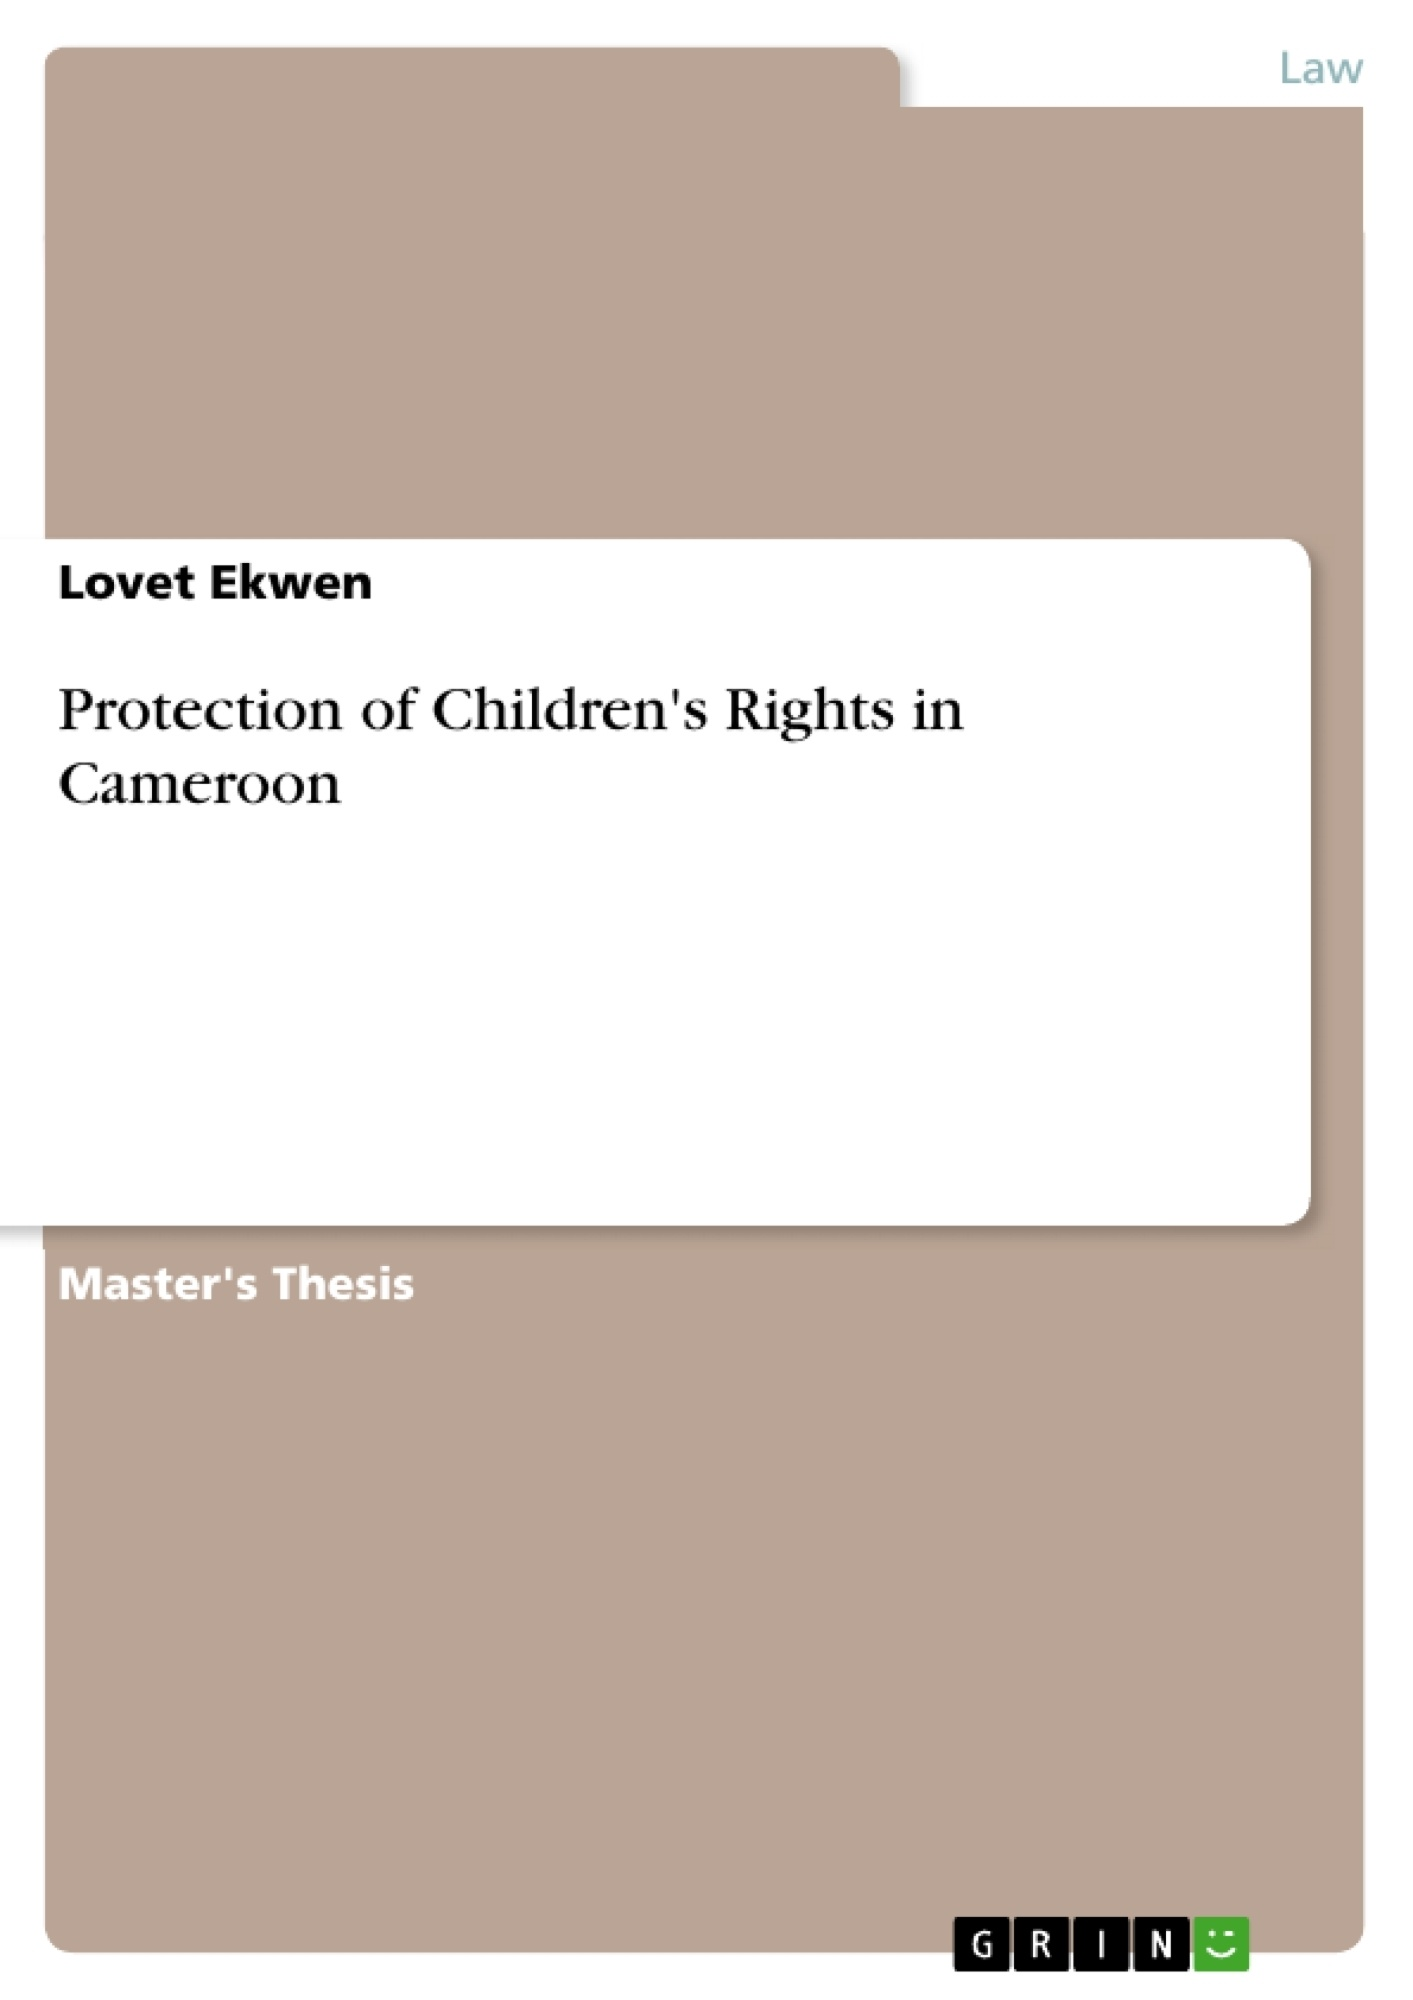 Protection of childrens rights in cameroon publish your masters earn money and win an iphone x fandeluxe Choice Image